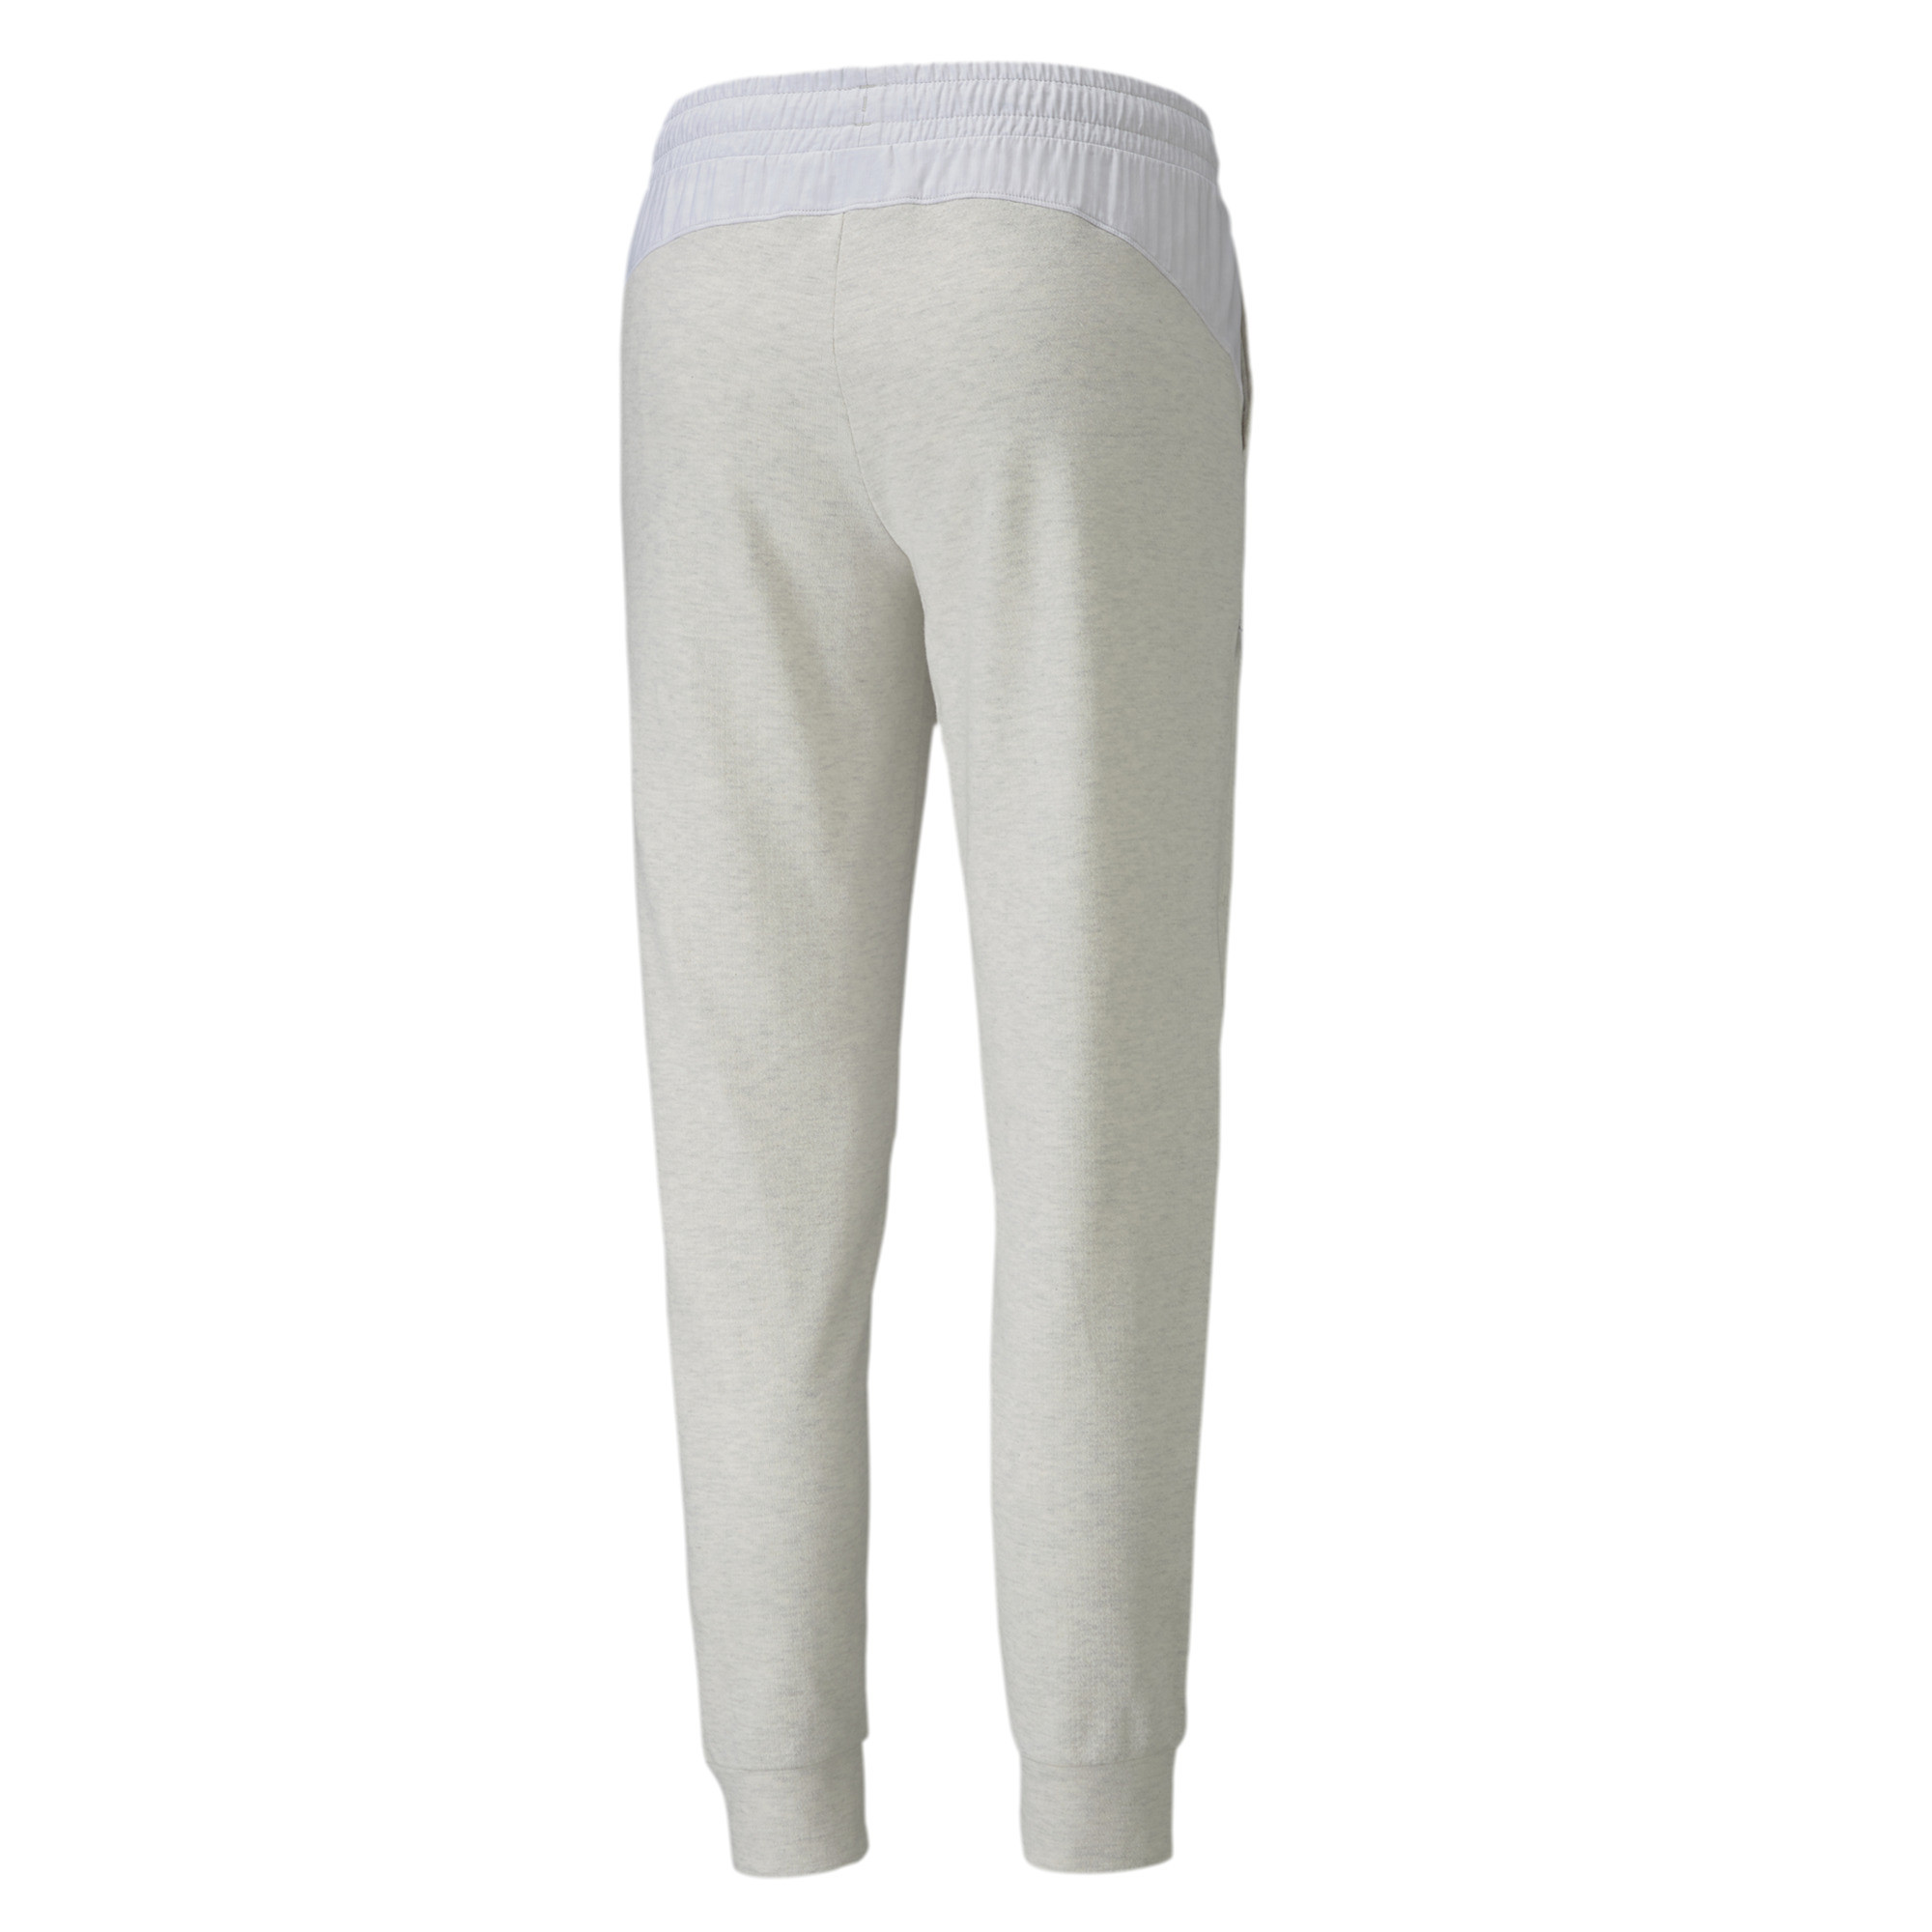 PUMA-Women-039-s-NU-TILITY-Sweatpants thumbnail 3